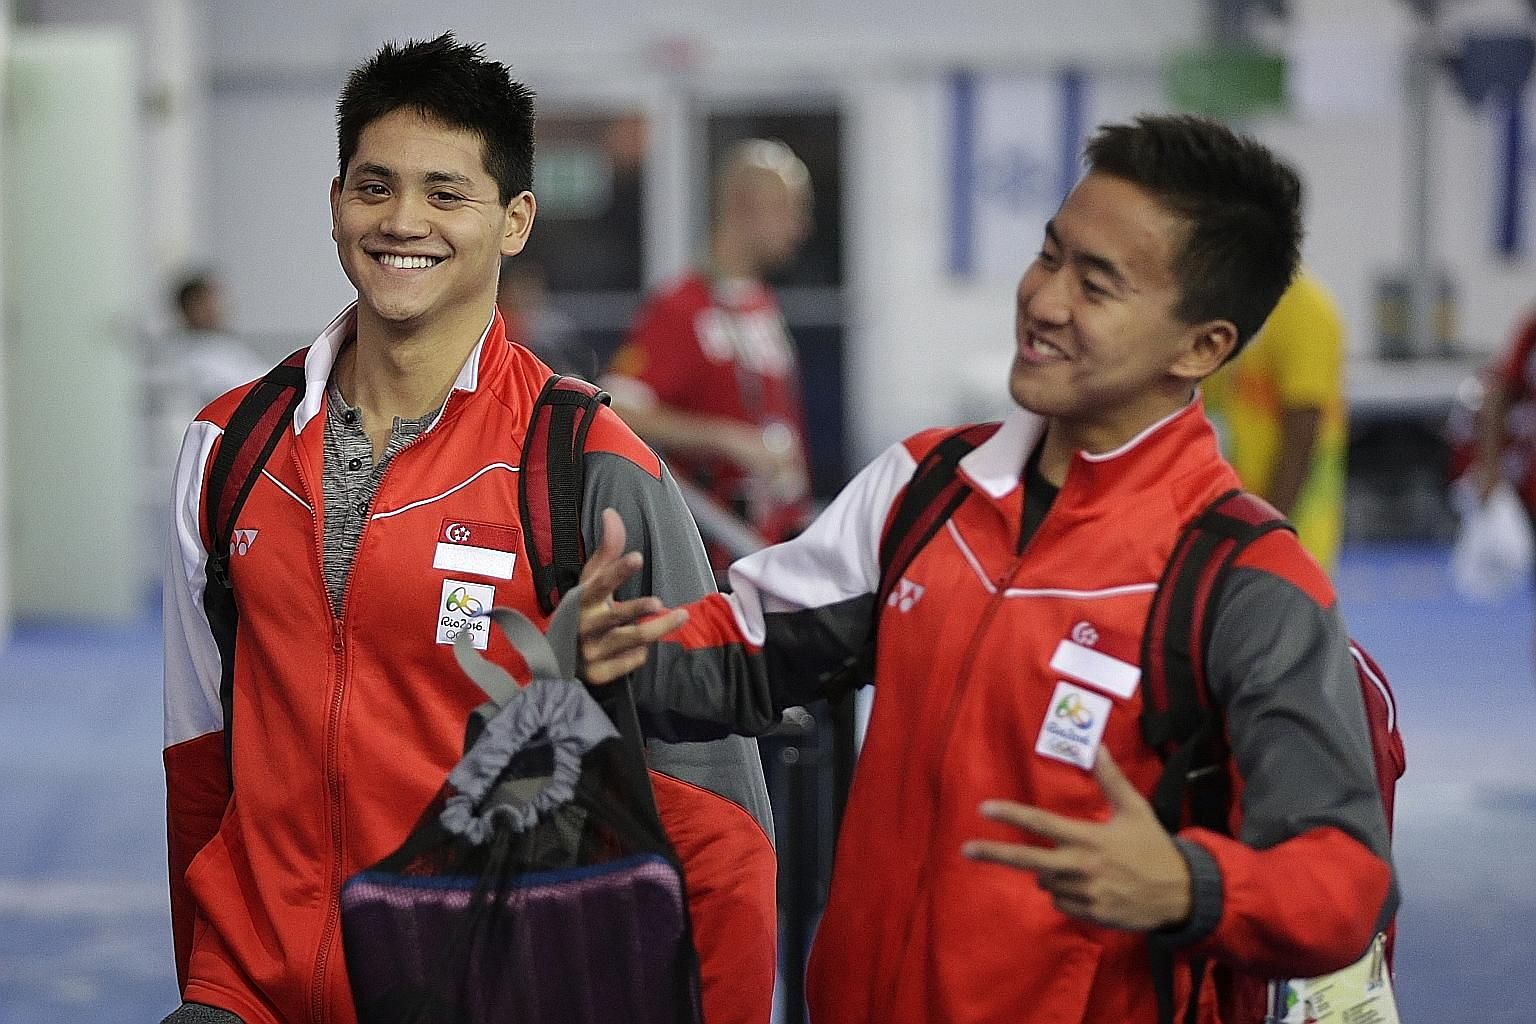 Joseph Schooling knows he has to step up to scale the heights again and Quah Zheng Wen will know he must always build on success.